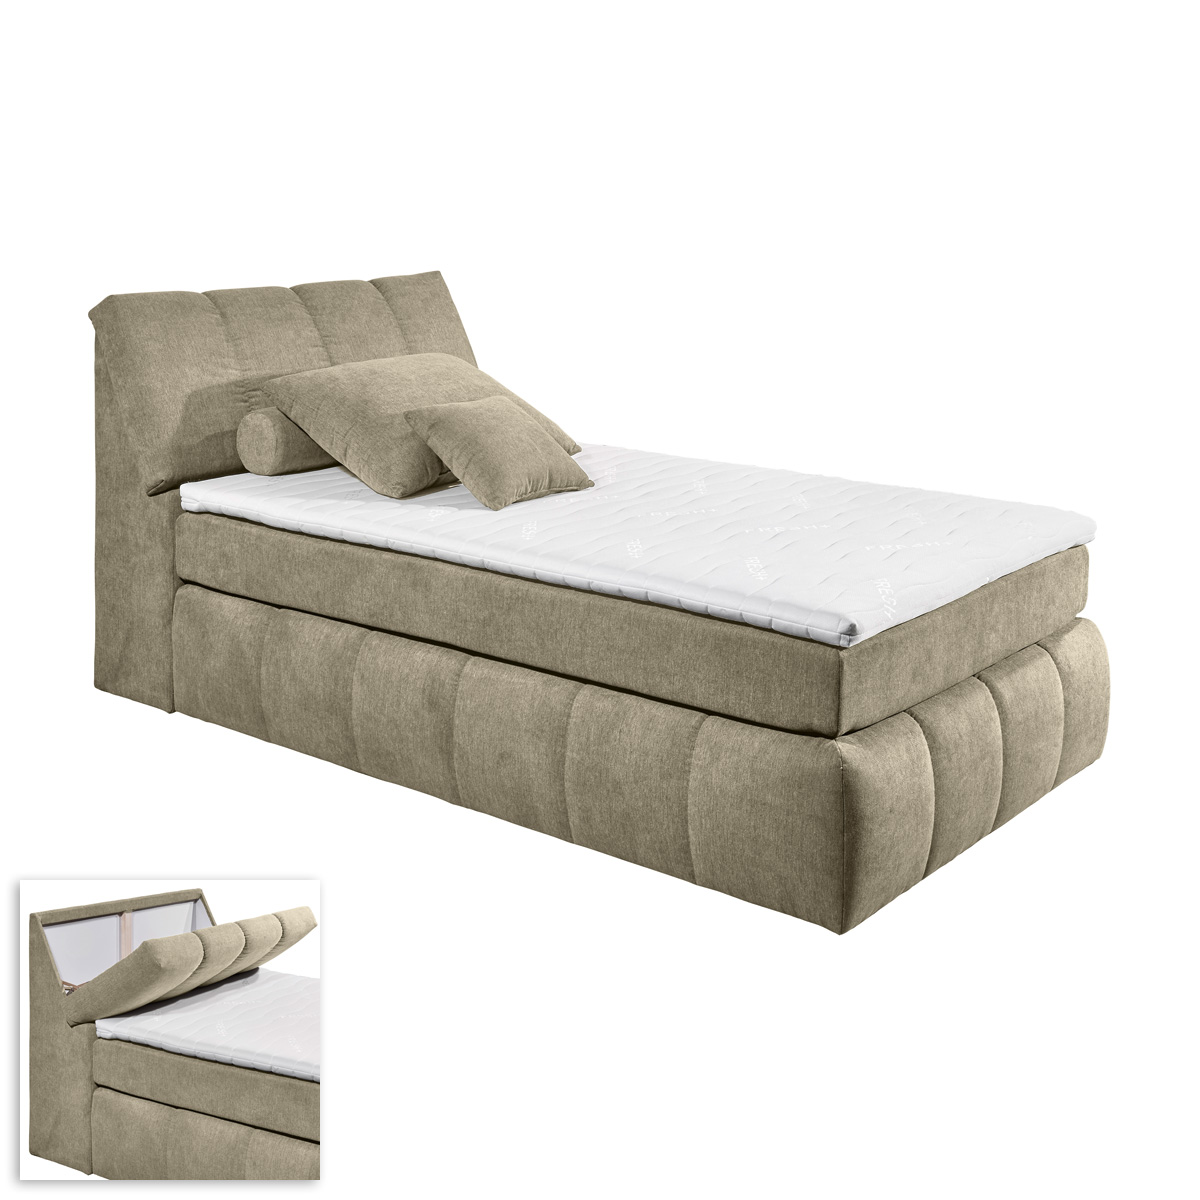 boxspringbett toledos bett schlafzimmerbett schlamm beige mit topper 120x200 ebay. Black Bedroom Furniture Sets. Home Design Ideas